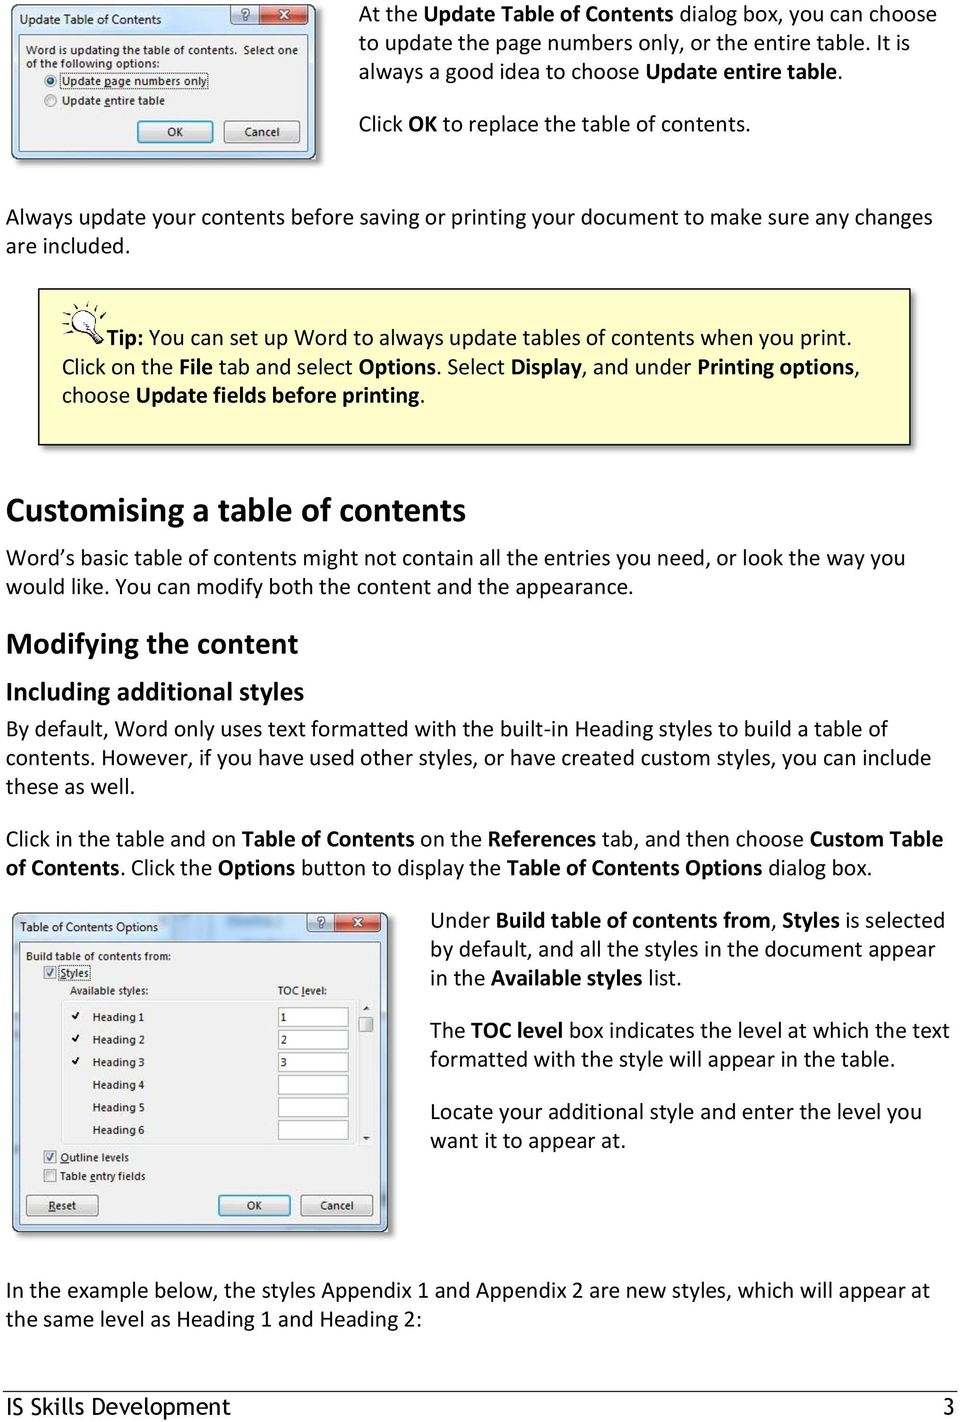 Tip: You can set up Word to always update tables of contents when you print. Click on the File tab and select Options. Select Display, and under Printing options, choose Update fields before printing.